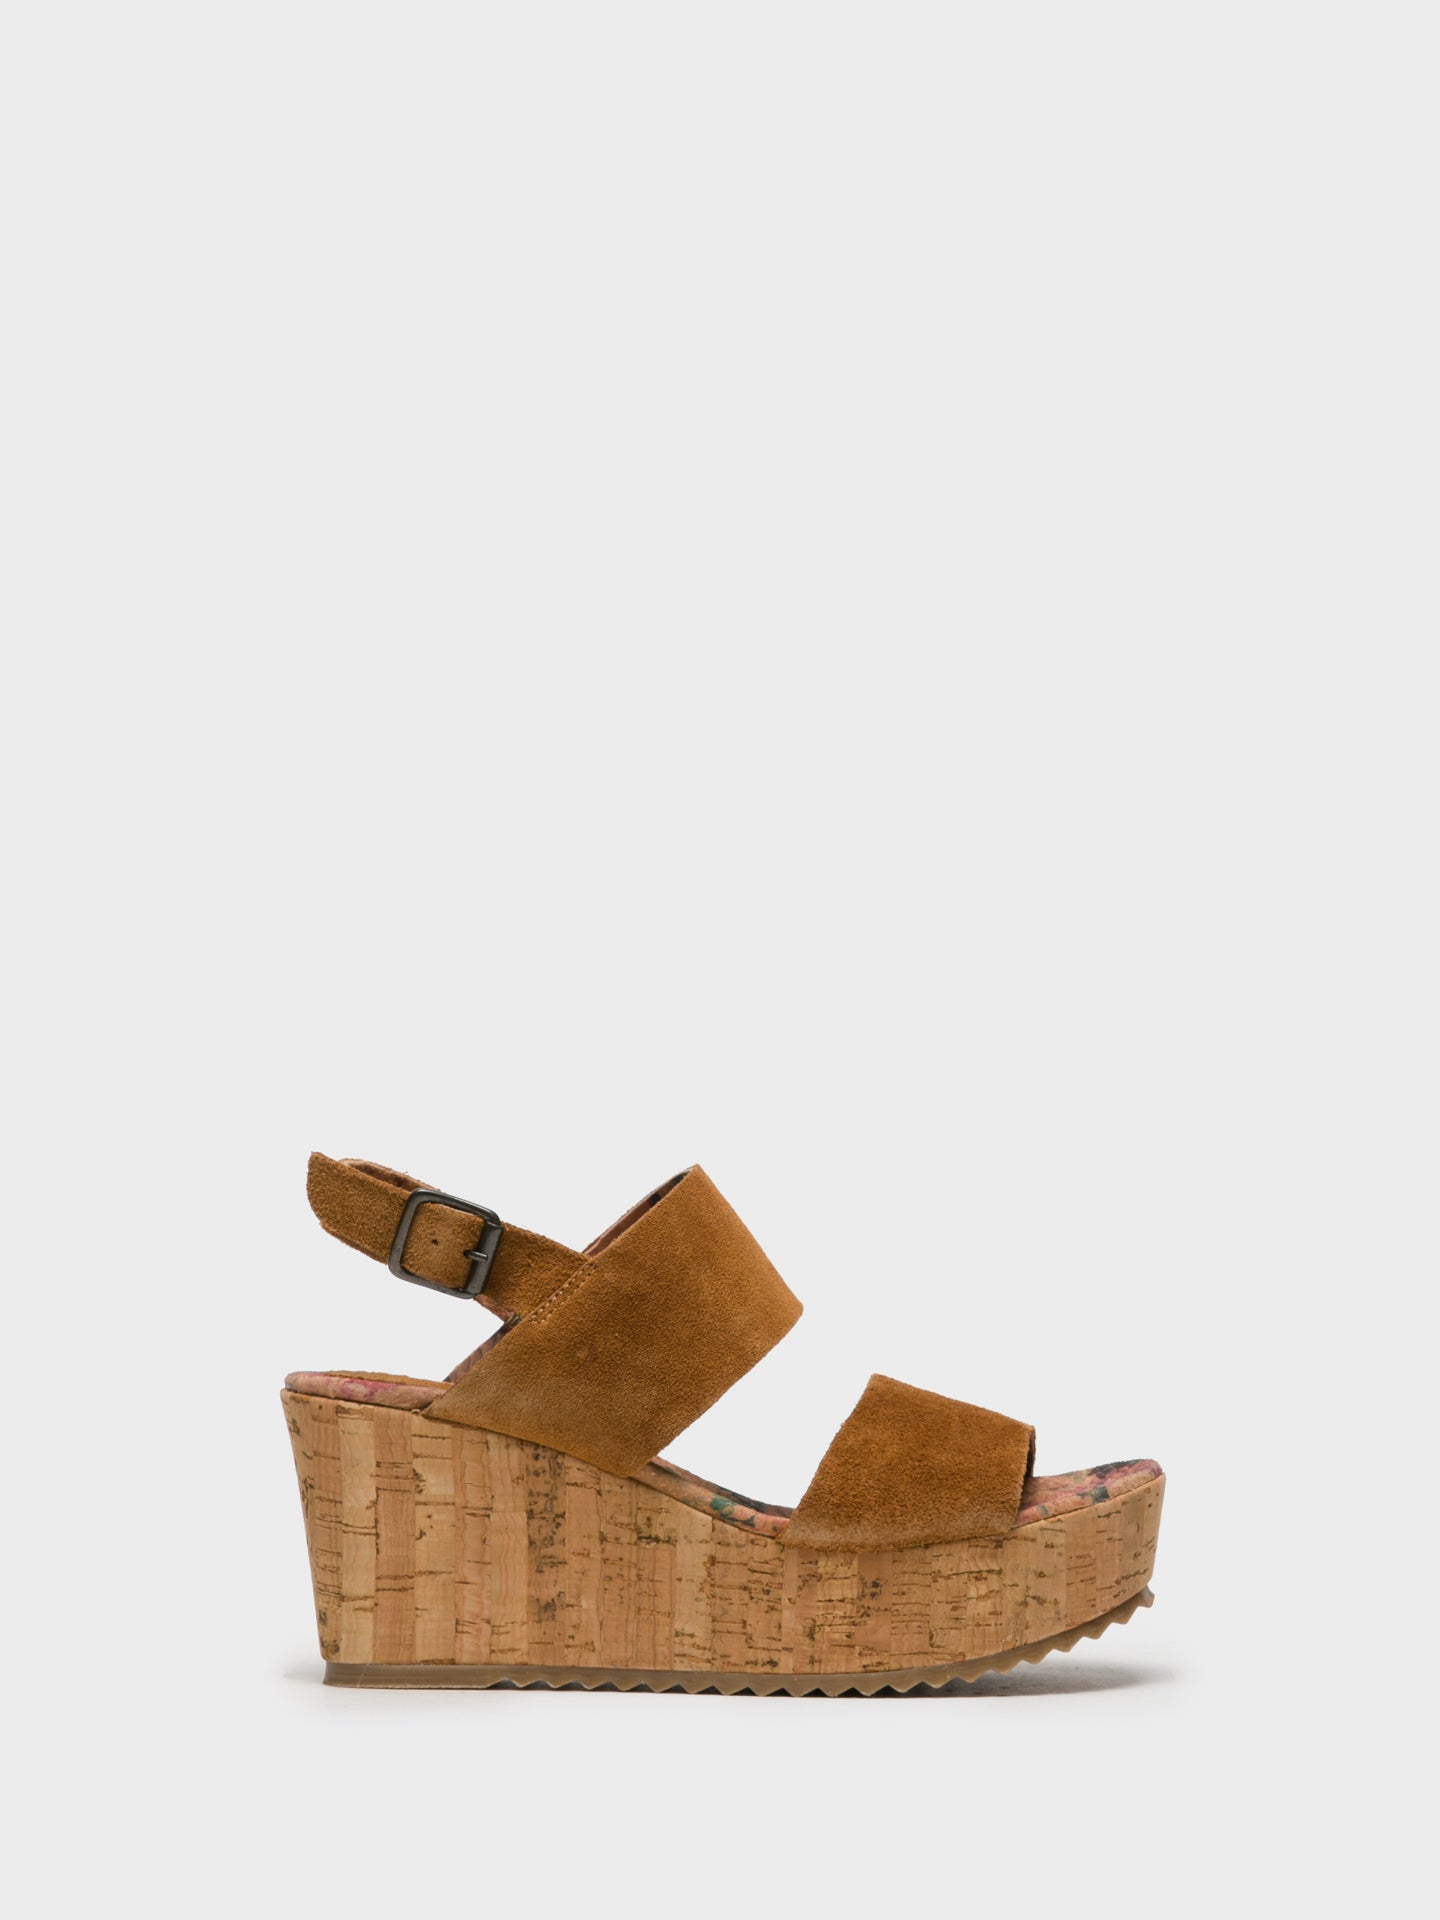 Foreva Sienna Buckle Sandals